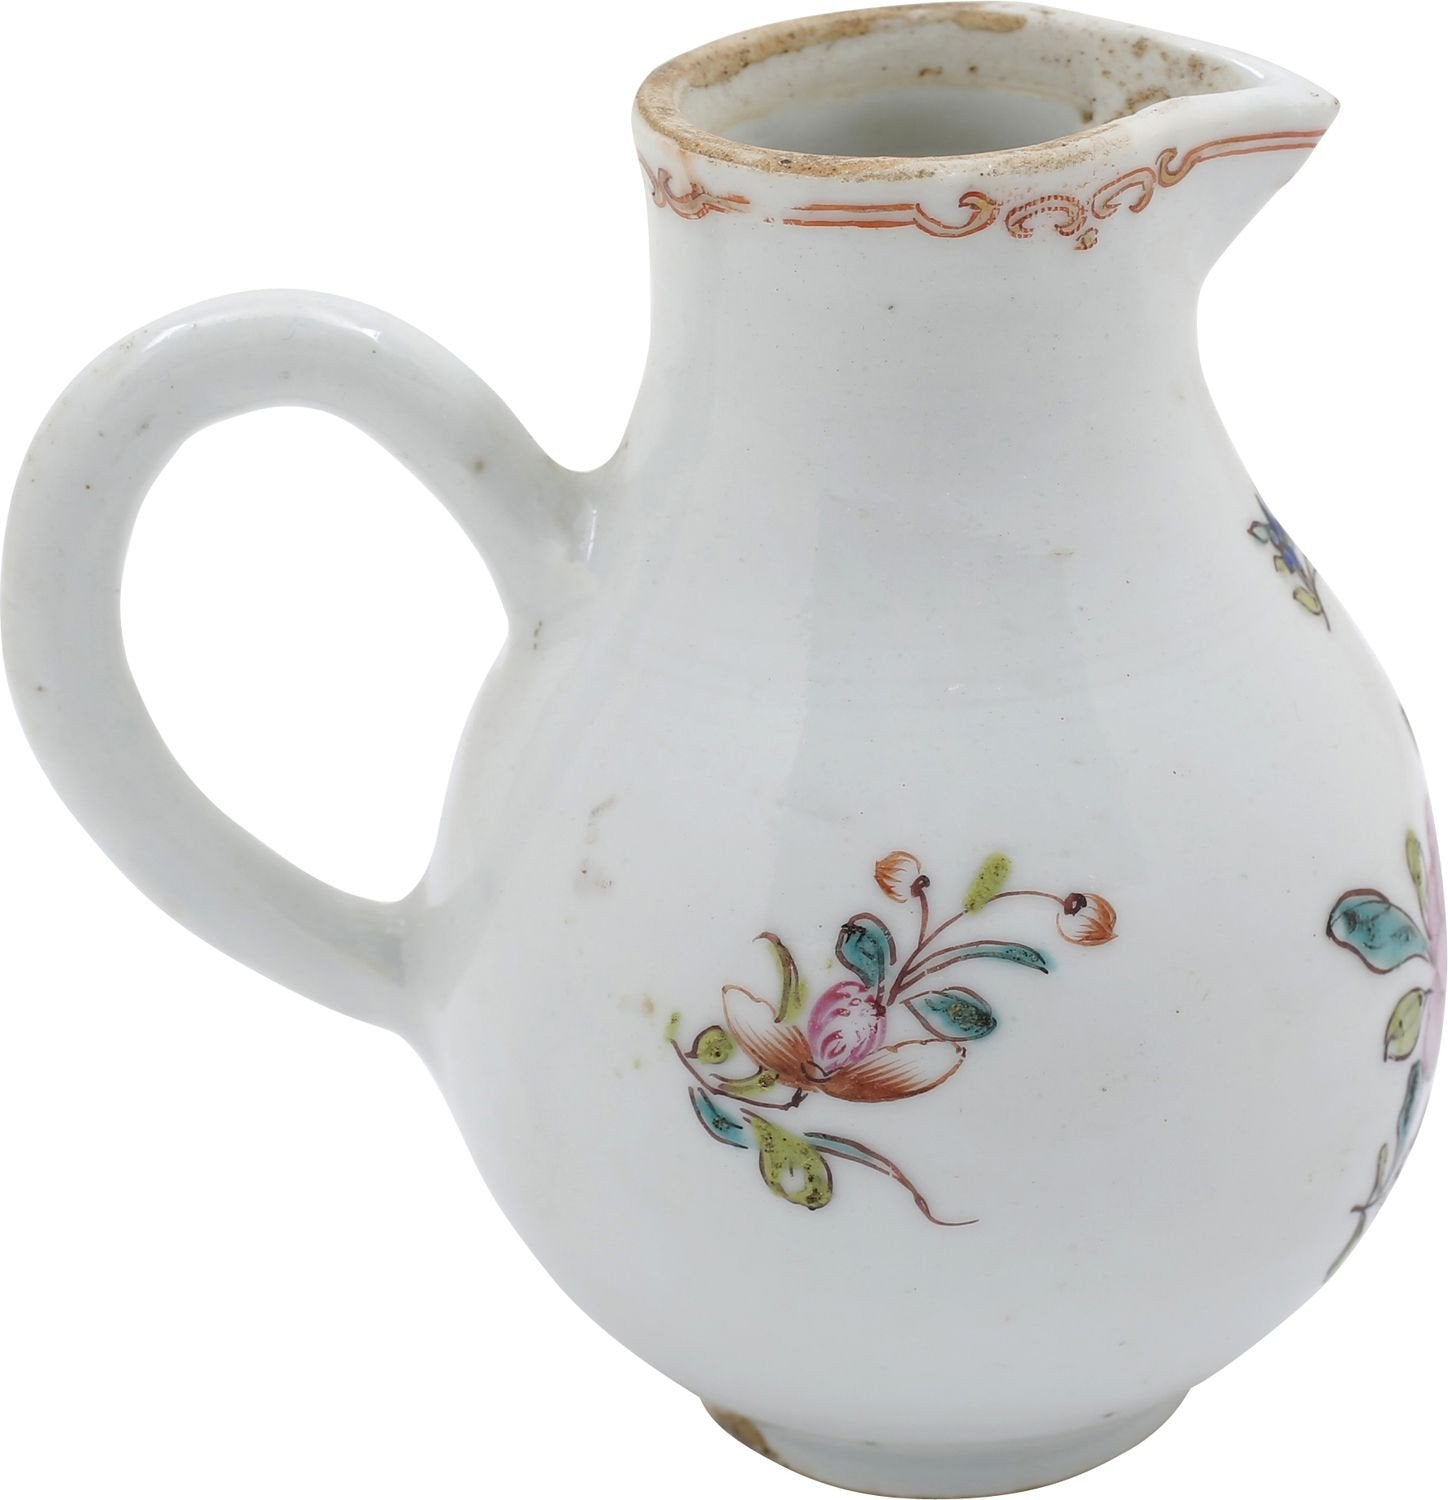 18th CENTURY CHINESE EXPORT PITCHER - Fagan Arms